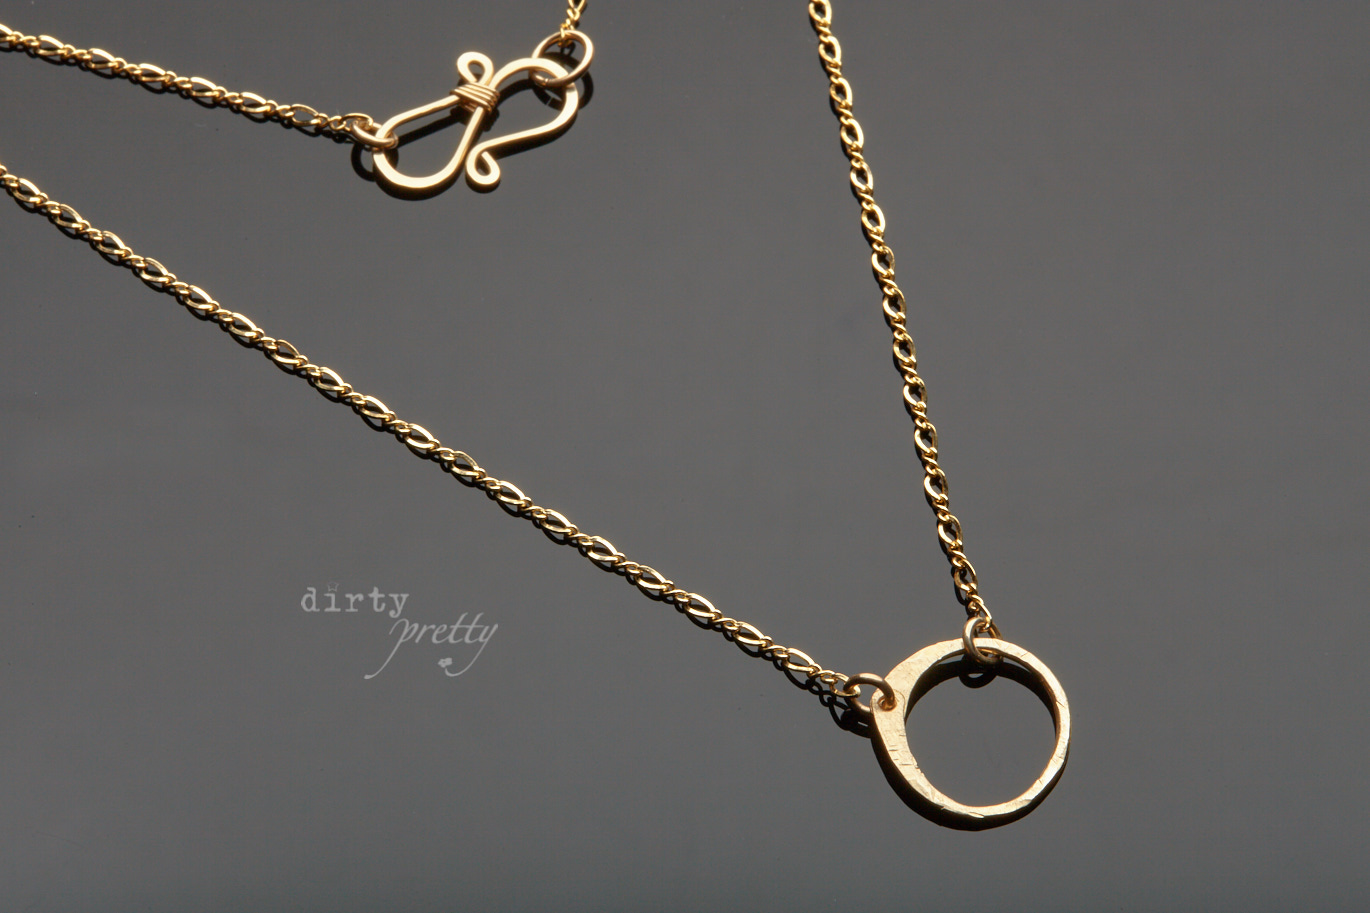 Christmas Gifts for Women - Tiny Zen Circle Gold Necklace by dirtypretty artwear - Christmas stocking stuffers